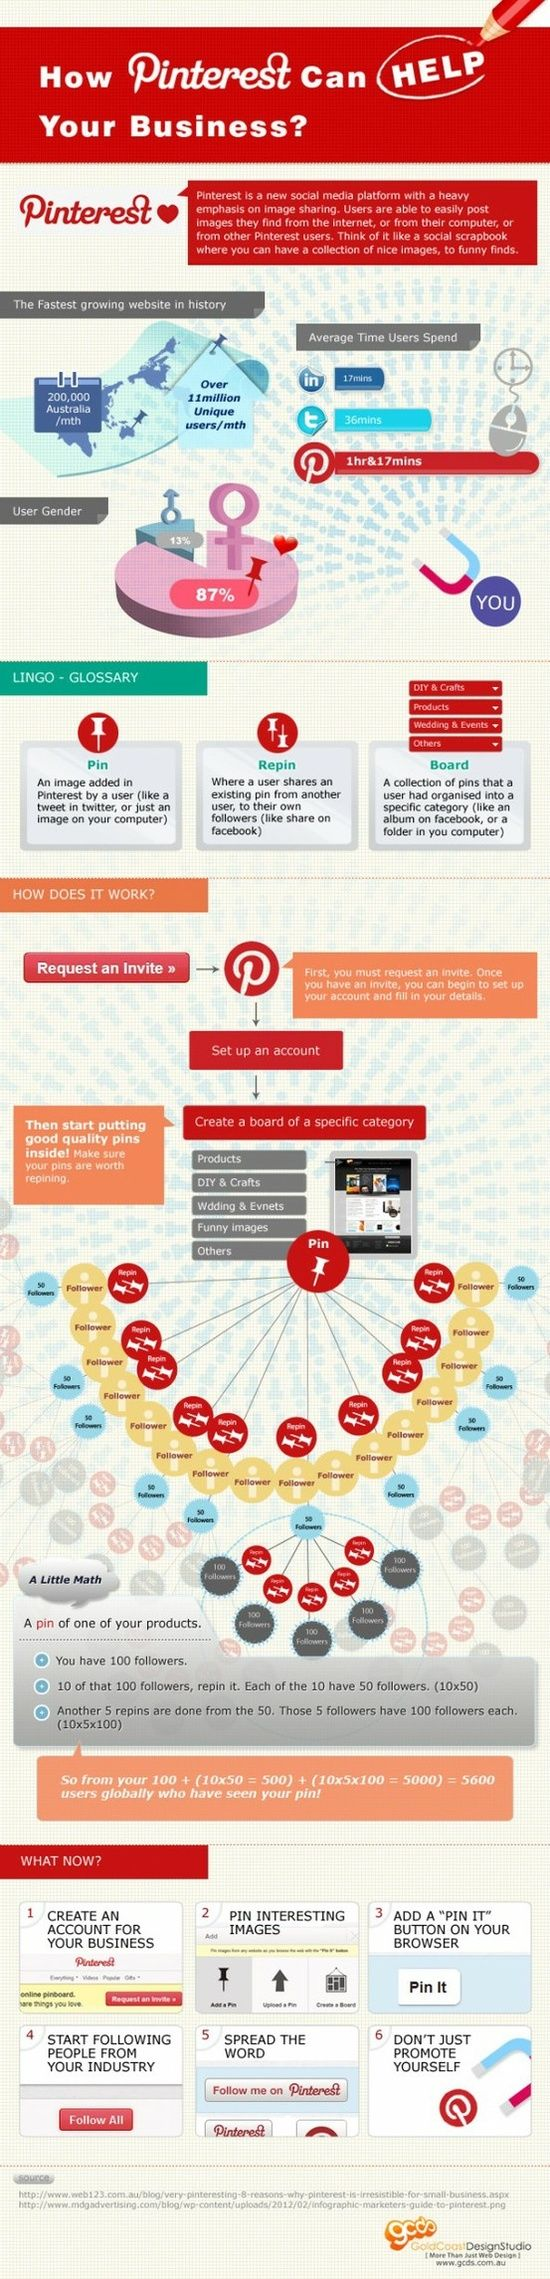 Yet another fab infographic on how Pinterest helps businesses to grow x Compelling graphics x Cute design